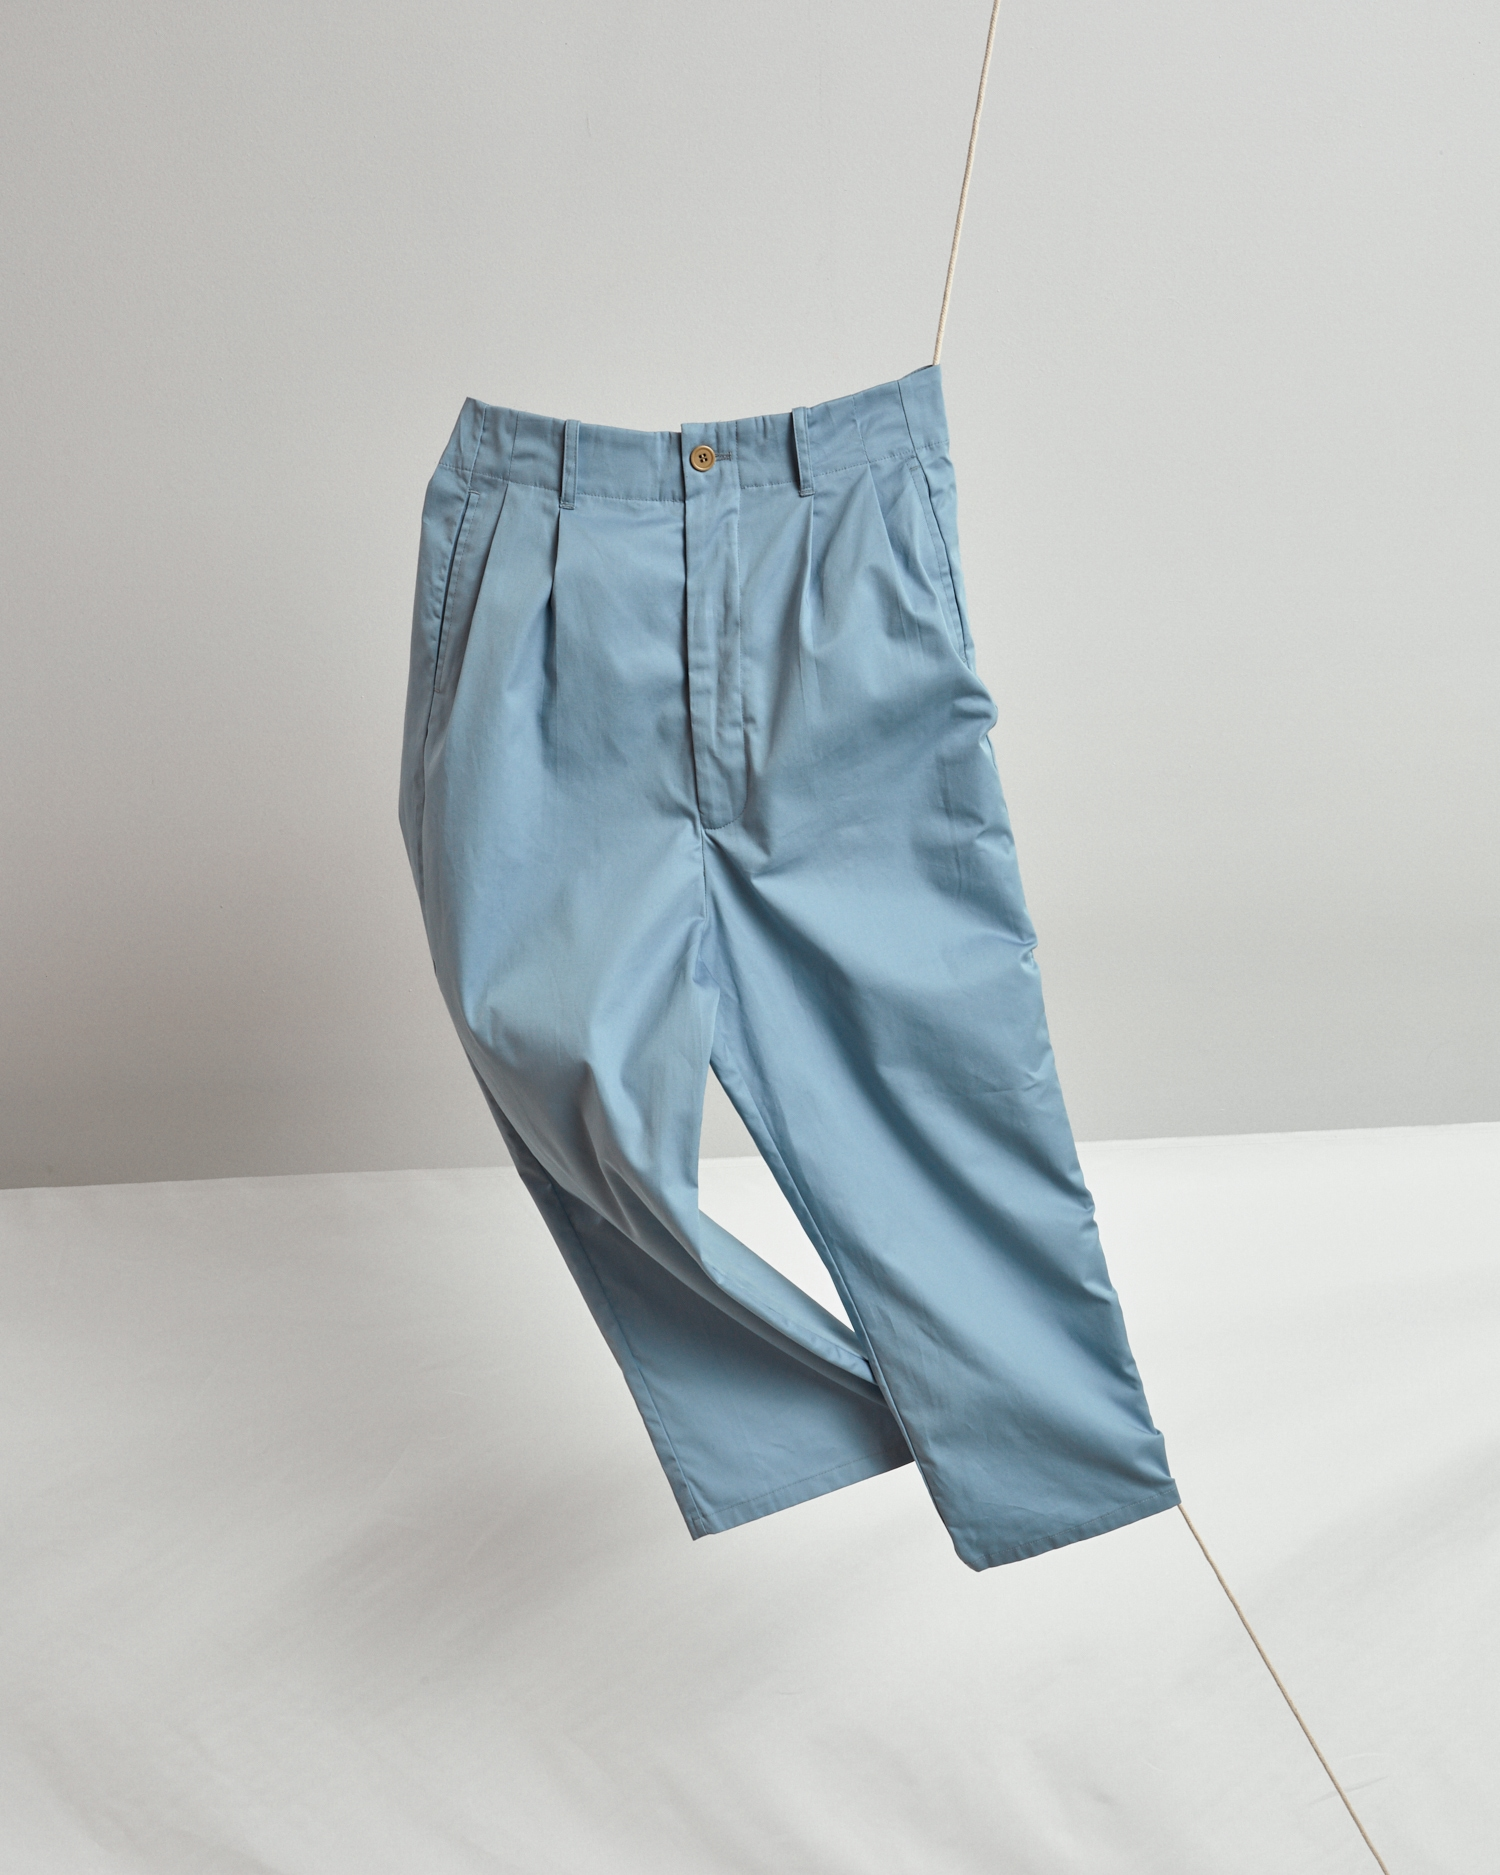 Shop Cropped, Wide-Leg Pant In Summer Weight Blue By One DNA